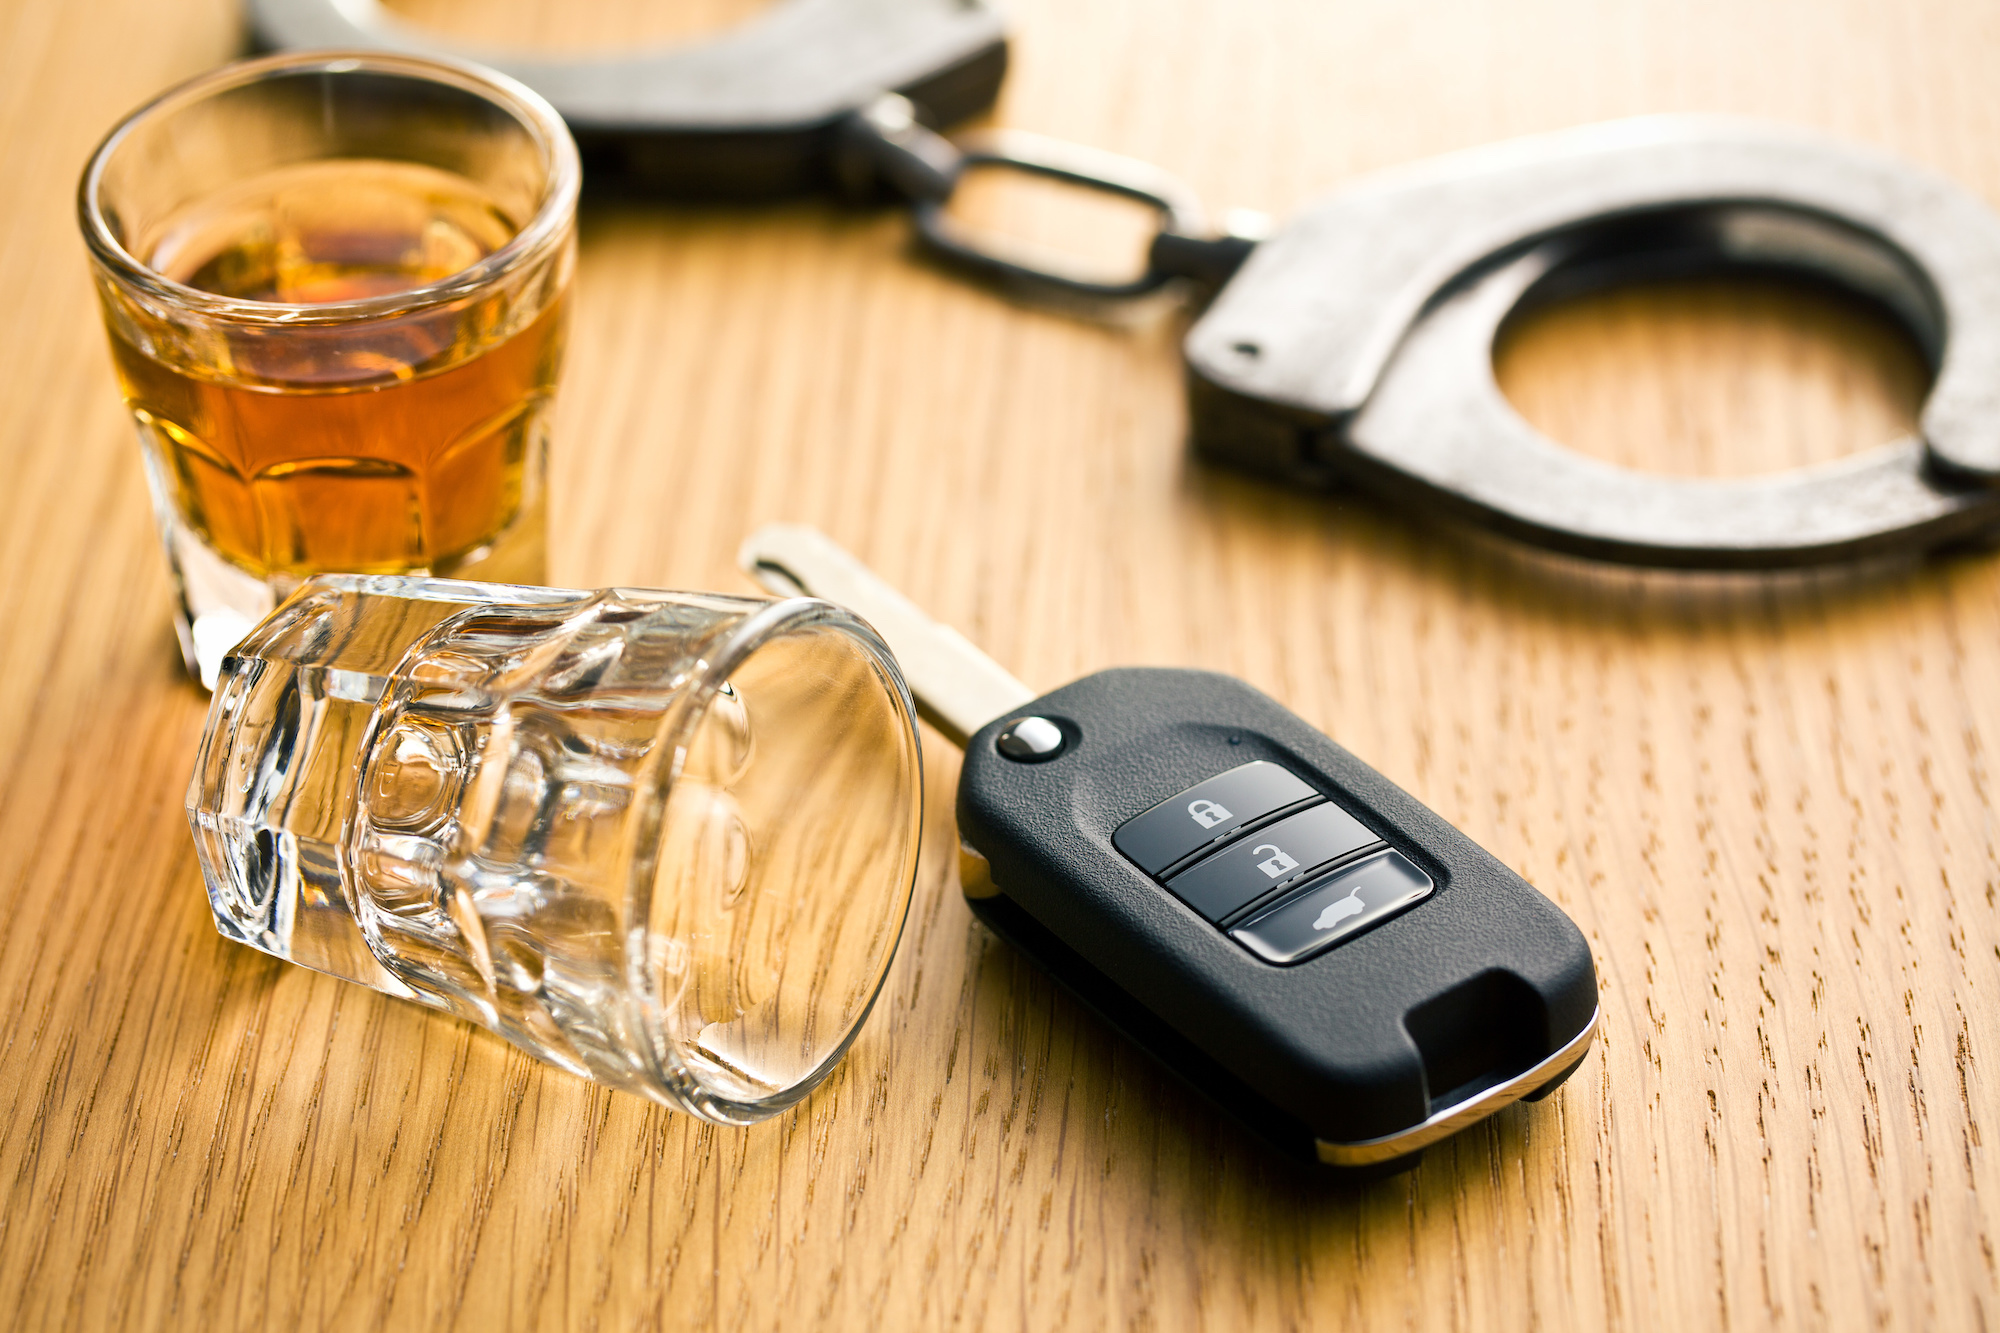 Man faces drunk driving charges